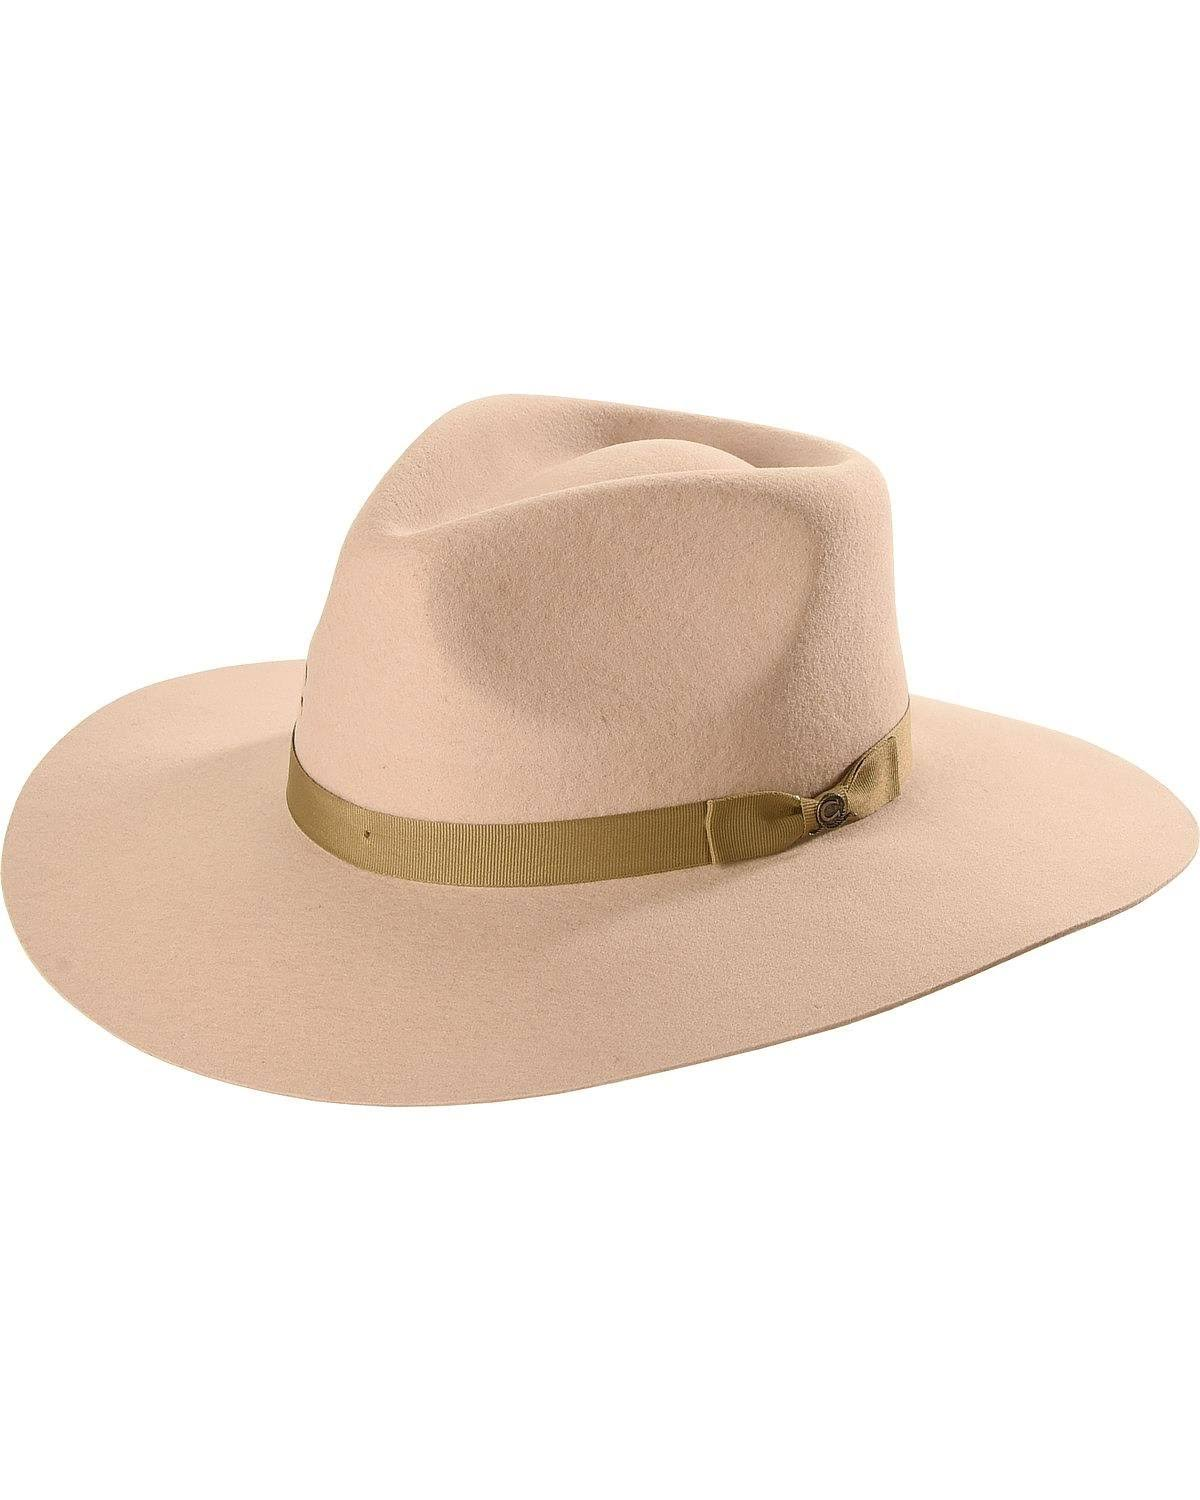 Charlie 1 Horse Silverbelly Highway Cowboy Hat